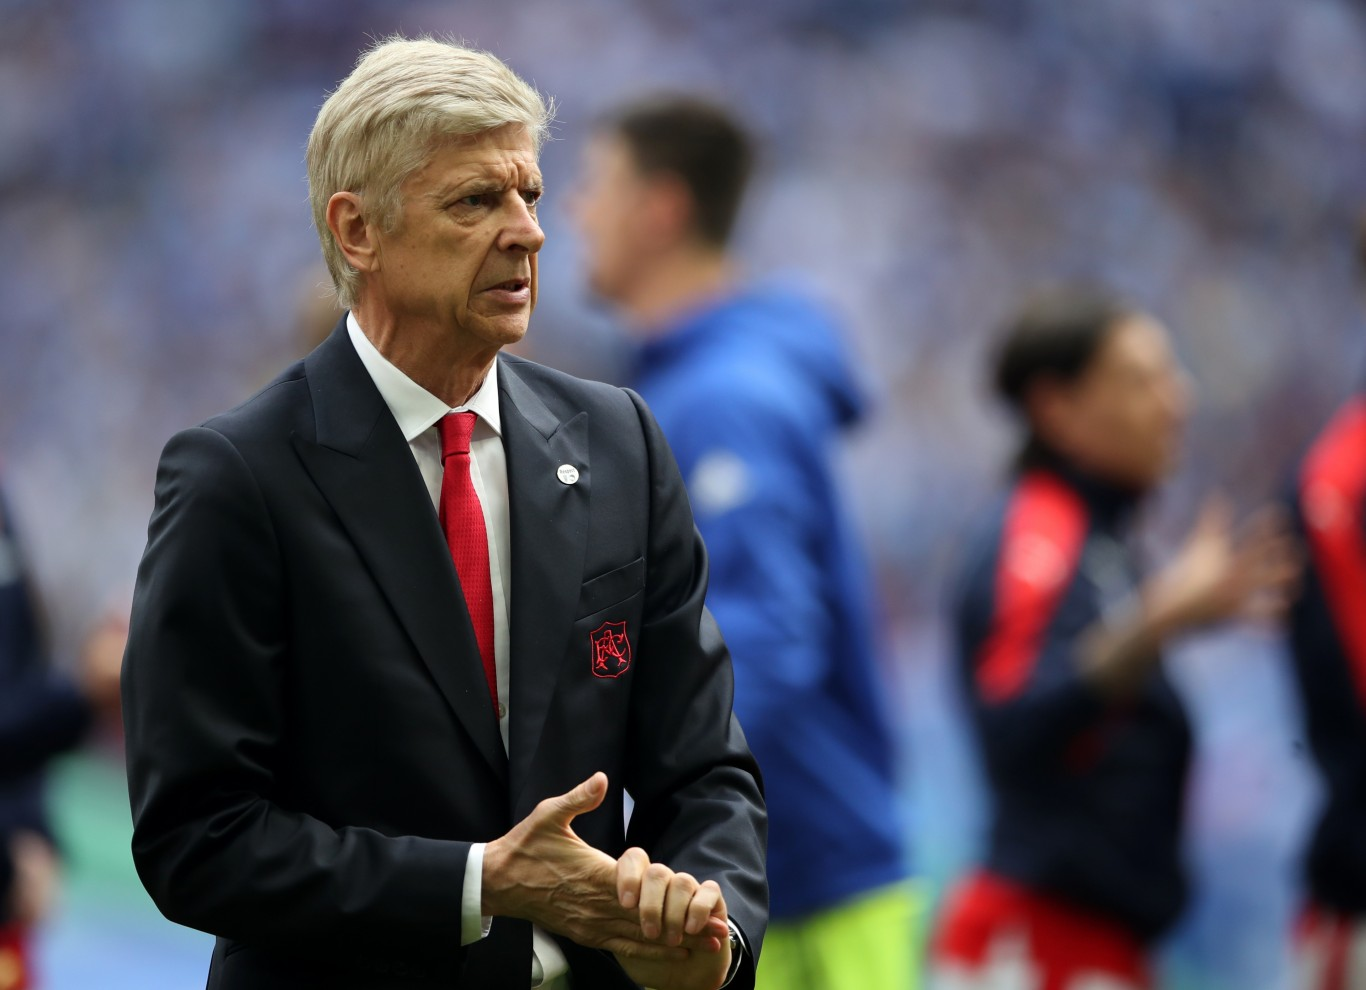 Arsenal manager Arsene Wenger during the Emirates FA Cup Final